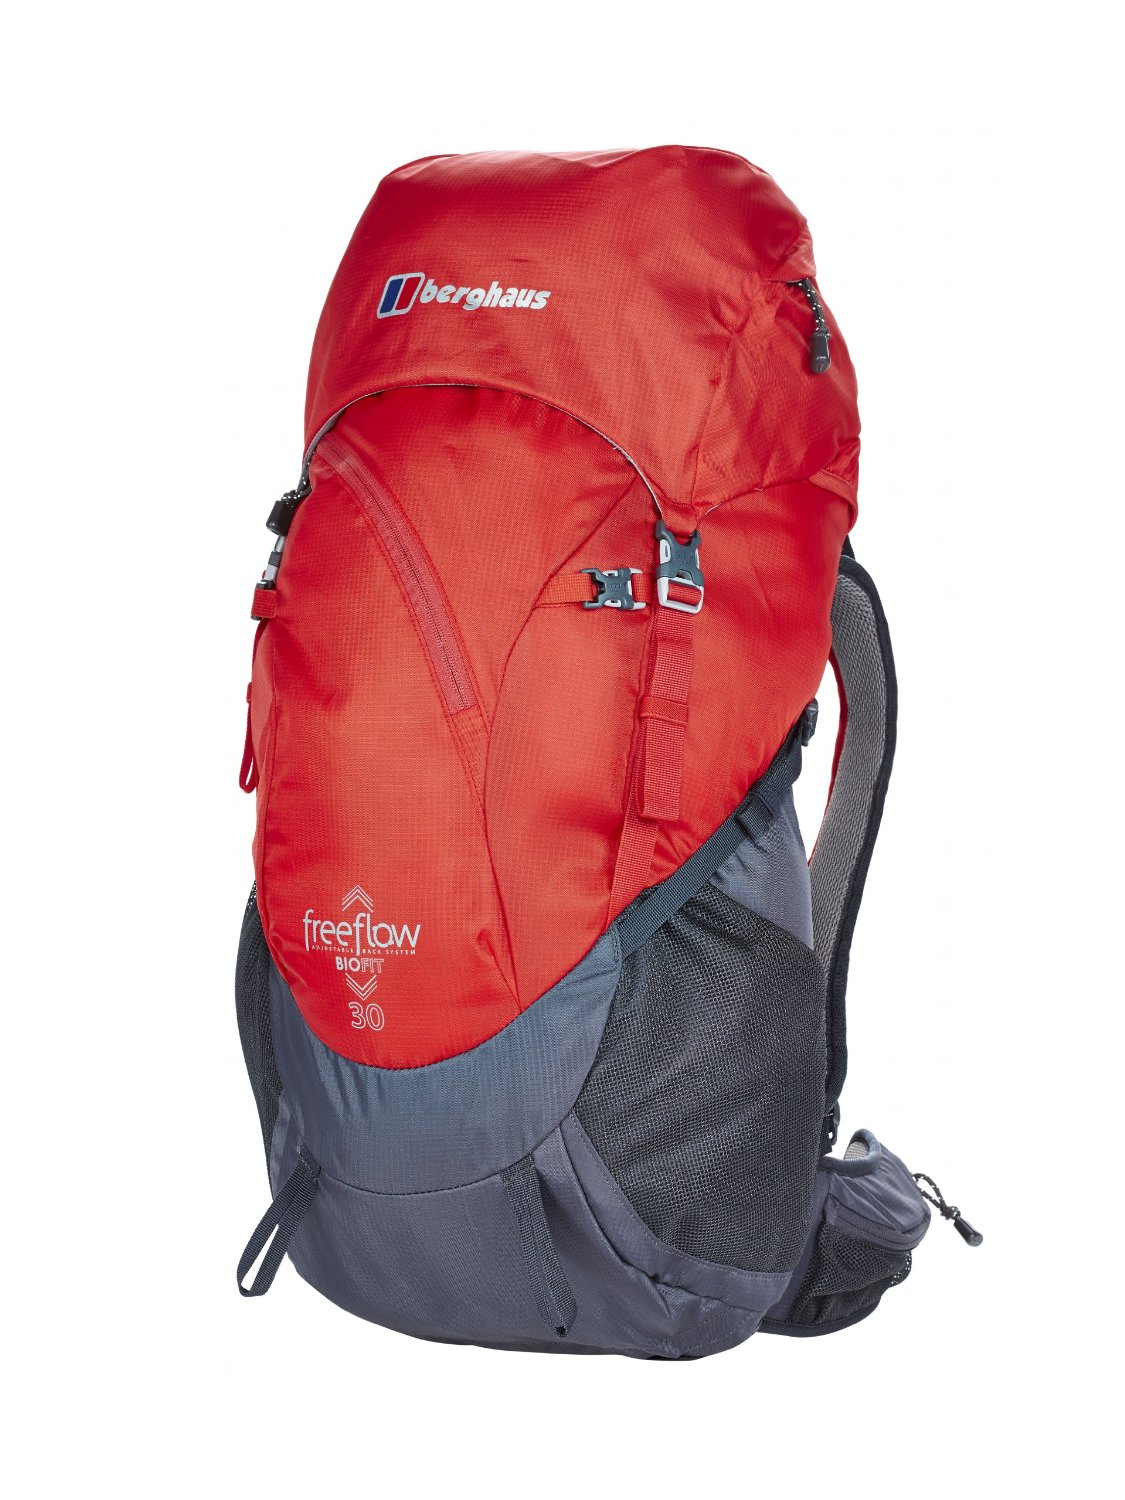 The Best Daypacks for 2017 - Best Hiking